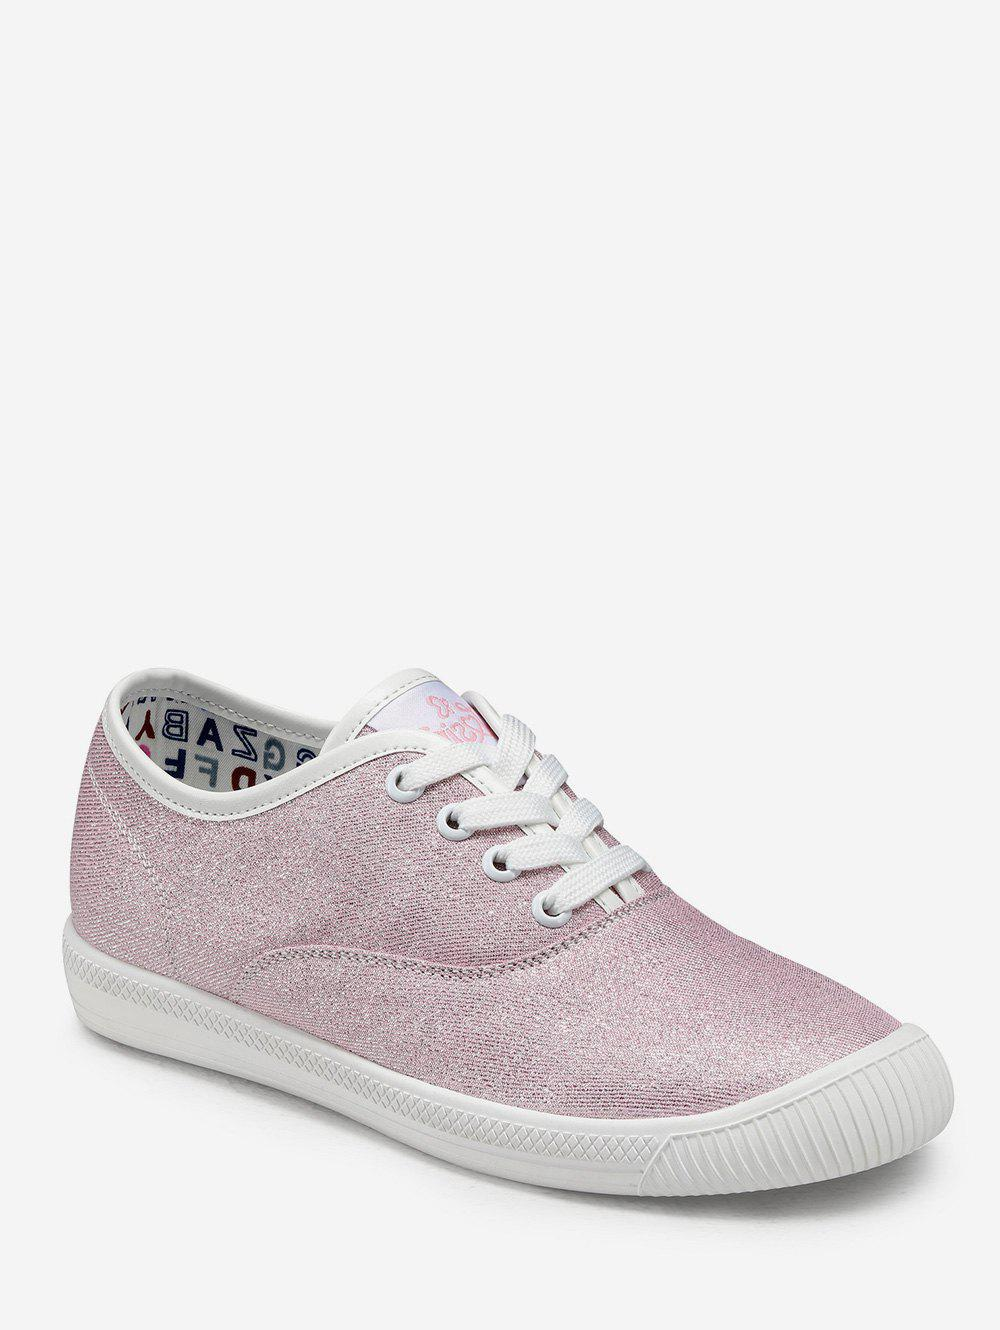 New Sequined Lace Up Flat Sneakers